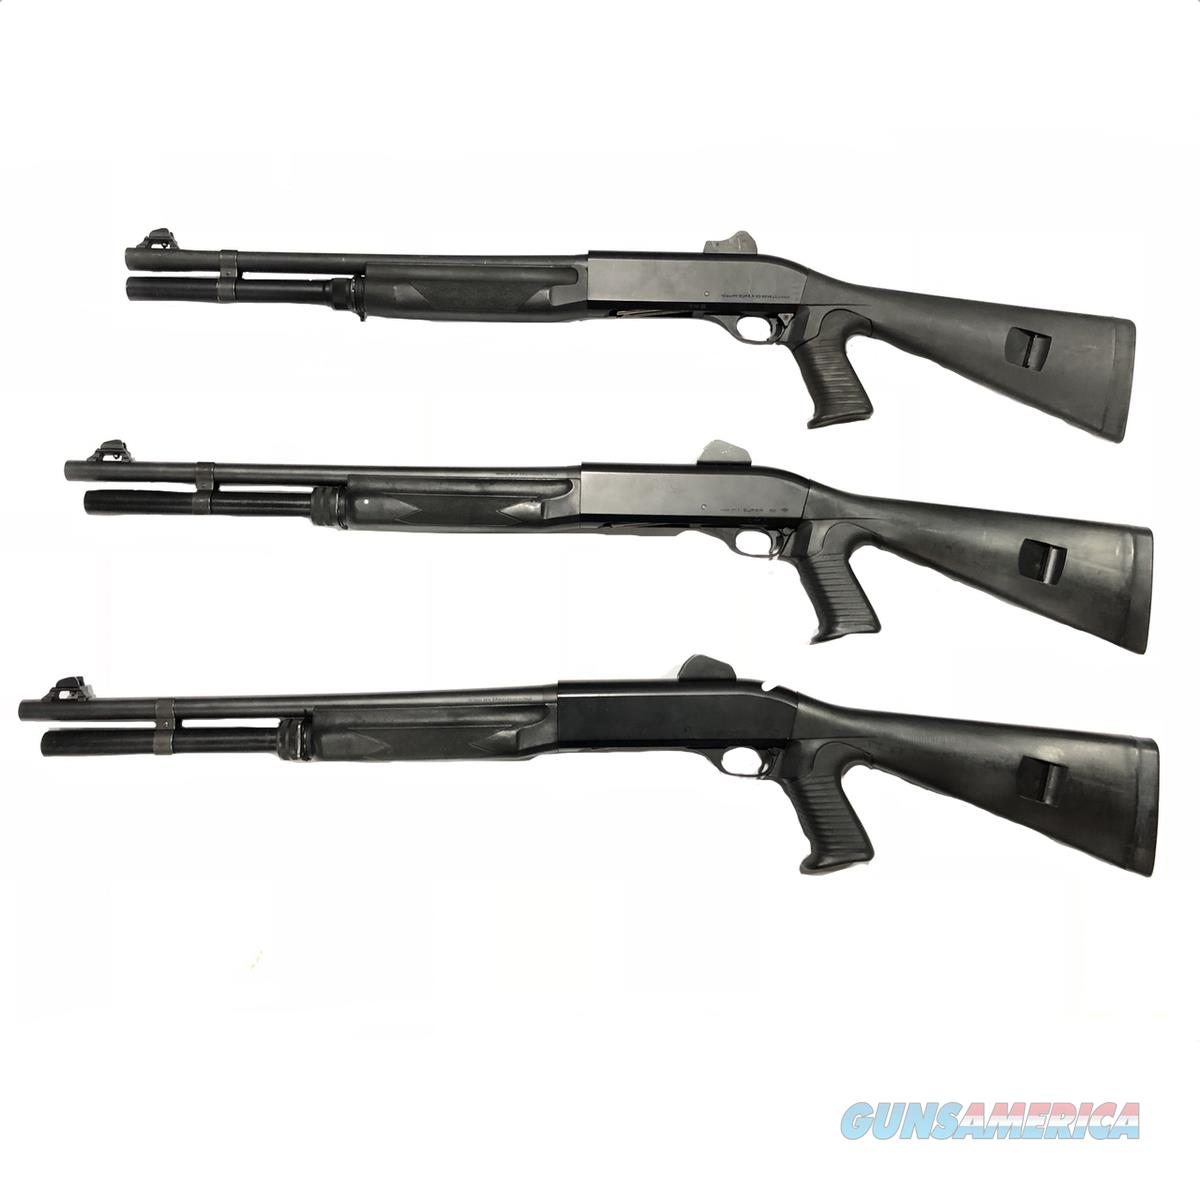 Benelli M1 SUPER 90 *DEPT USED 99% CONDITION*  Guns > Shotguns > Benelli Shotguns > Tactical